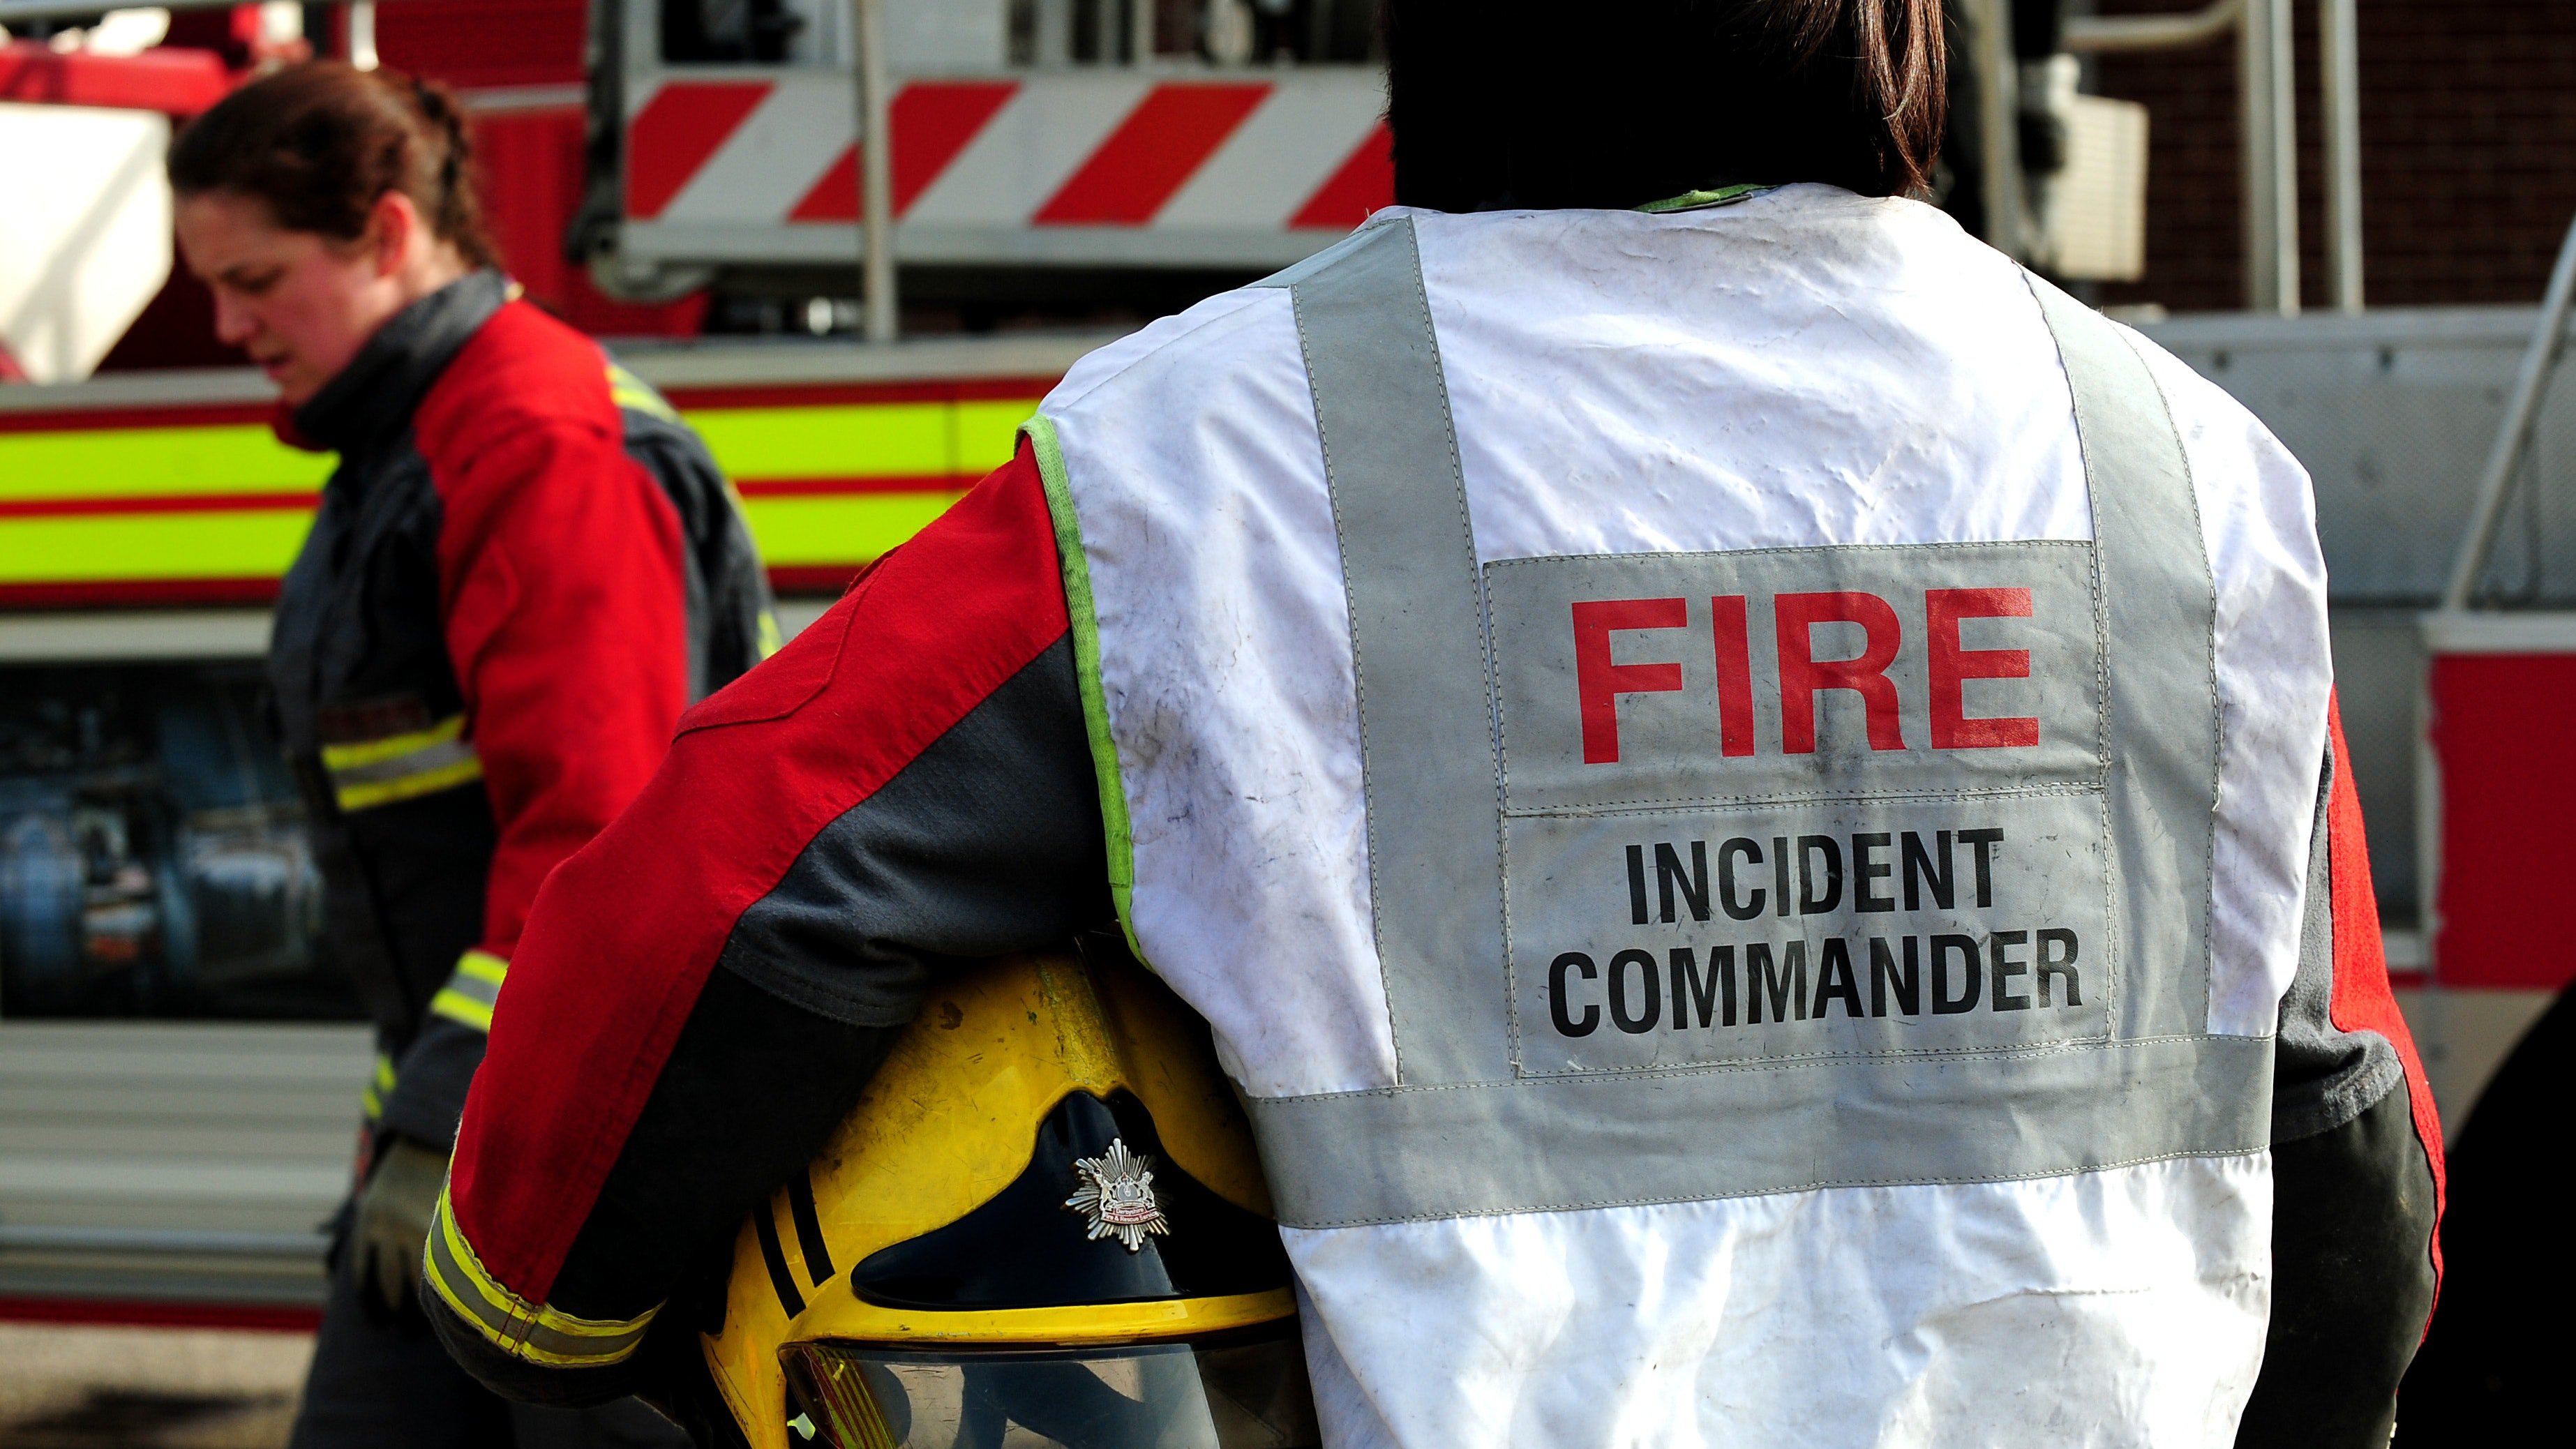 West Yorkshire firefighter's warning over deaths linked to paraffin-based skin creams